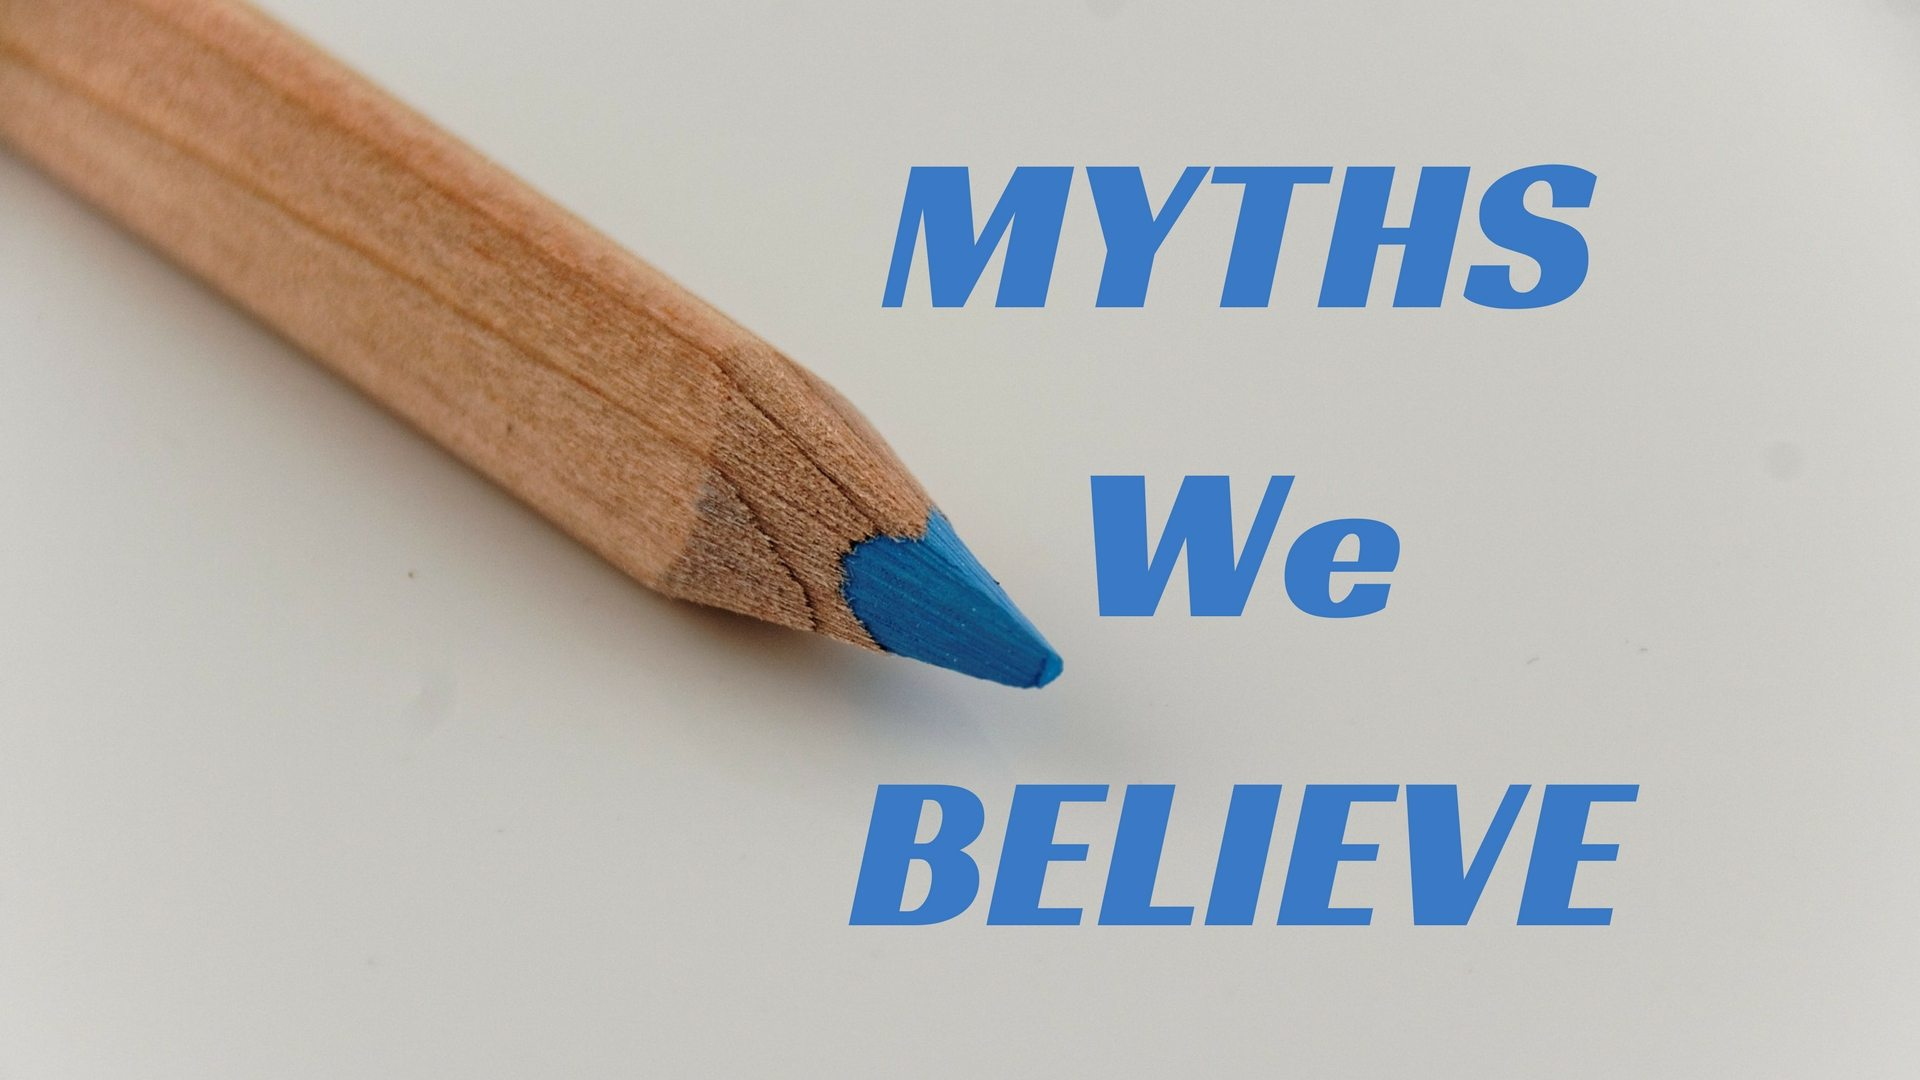 MYTHS We BELIEVE - Canva - Graphic stock